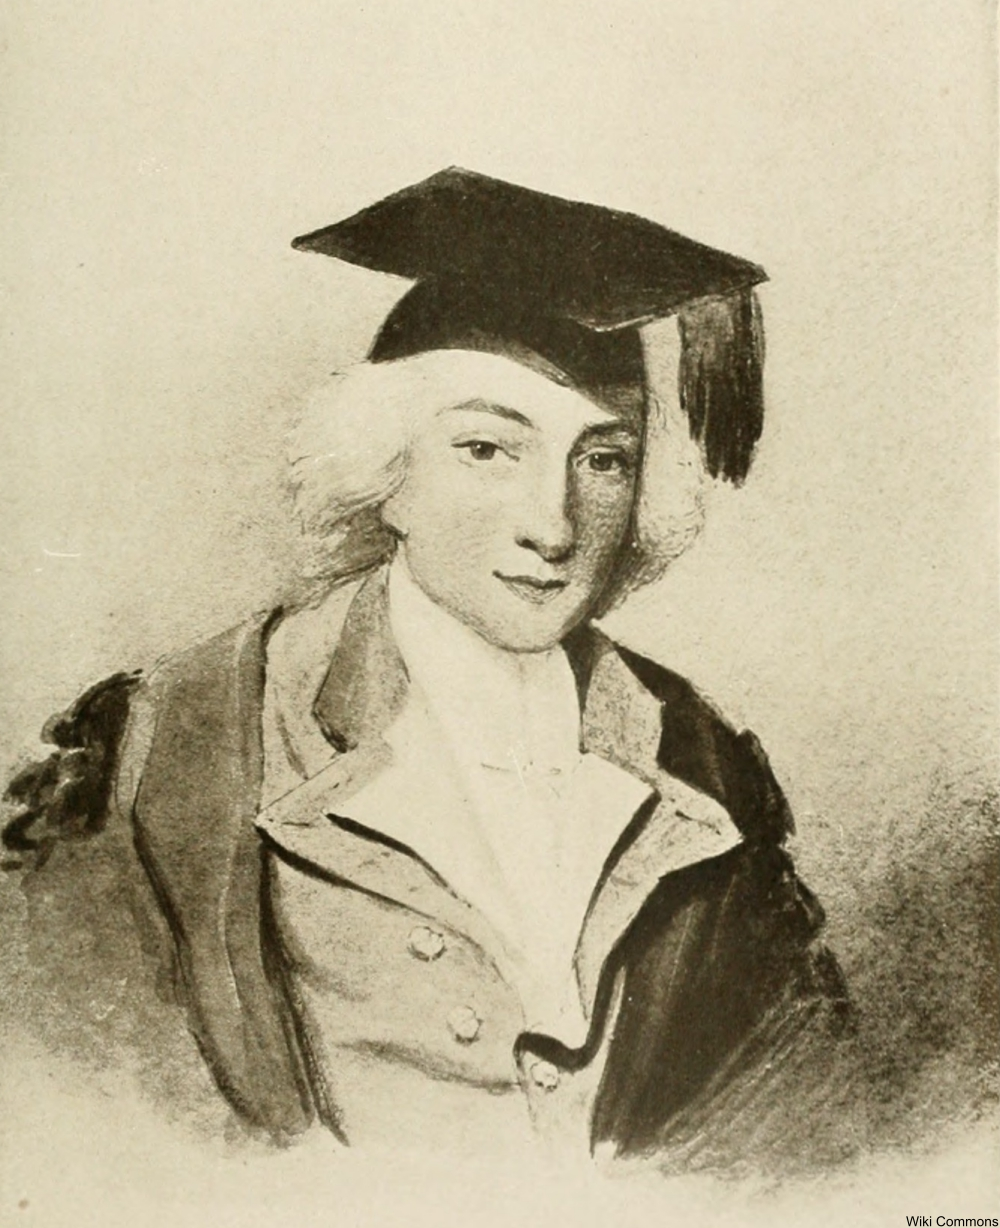 depiction of Smithson as a young graduate